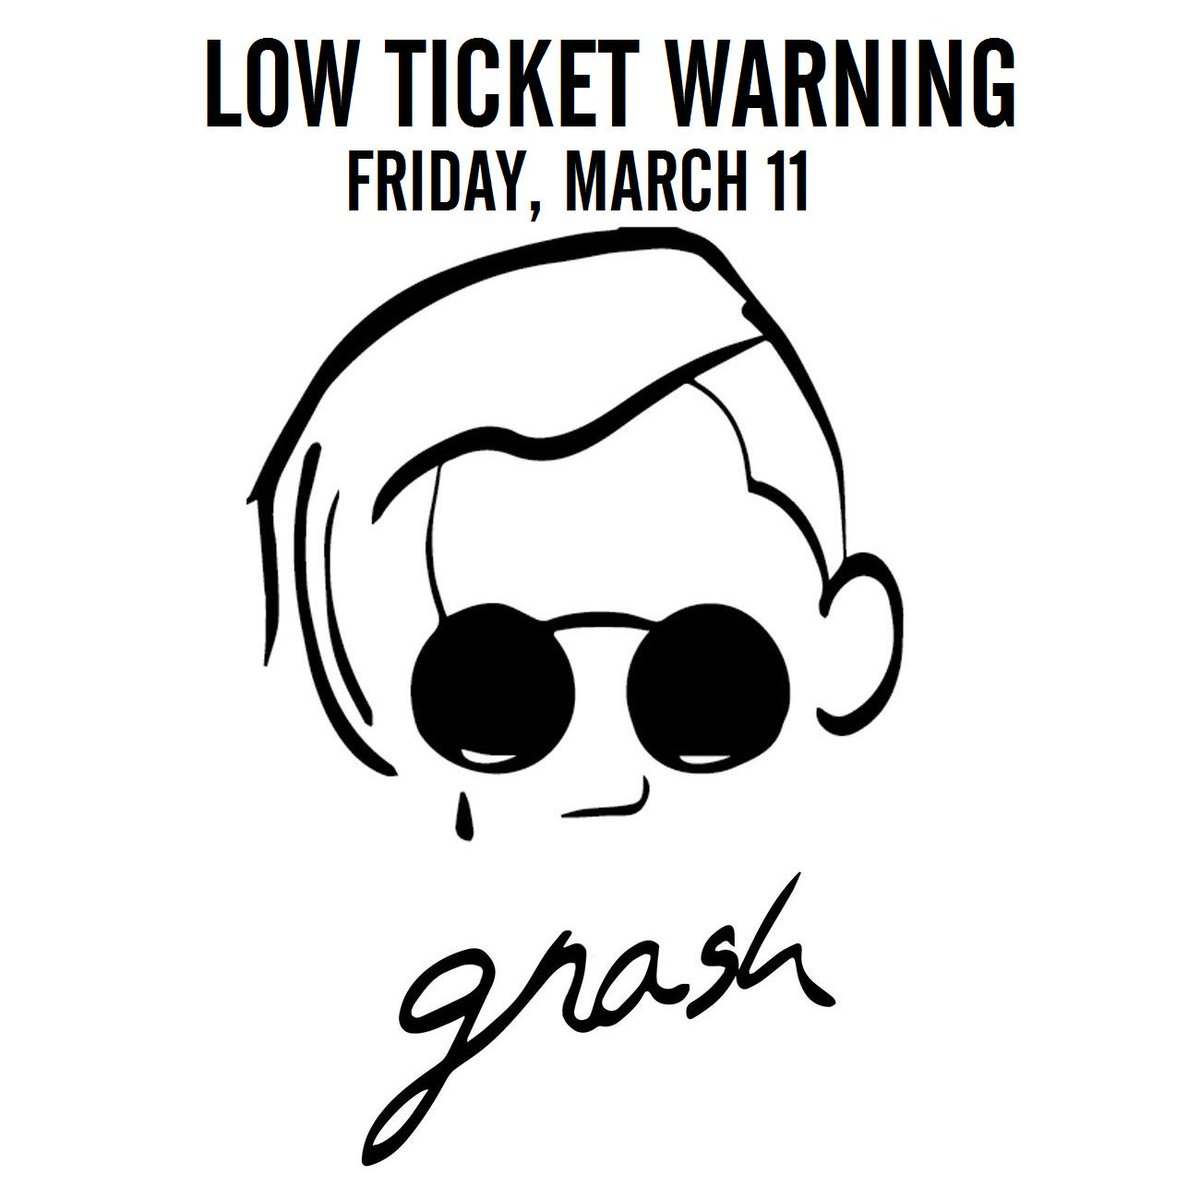 Low Ticket Warning for @gnash on Friday, March 11 -- Don't miss out on this amazing night!